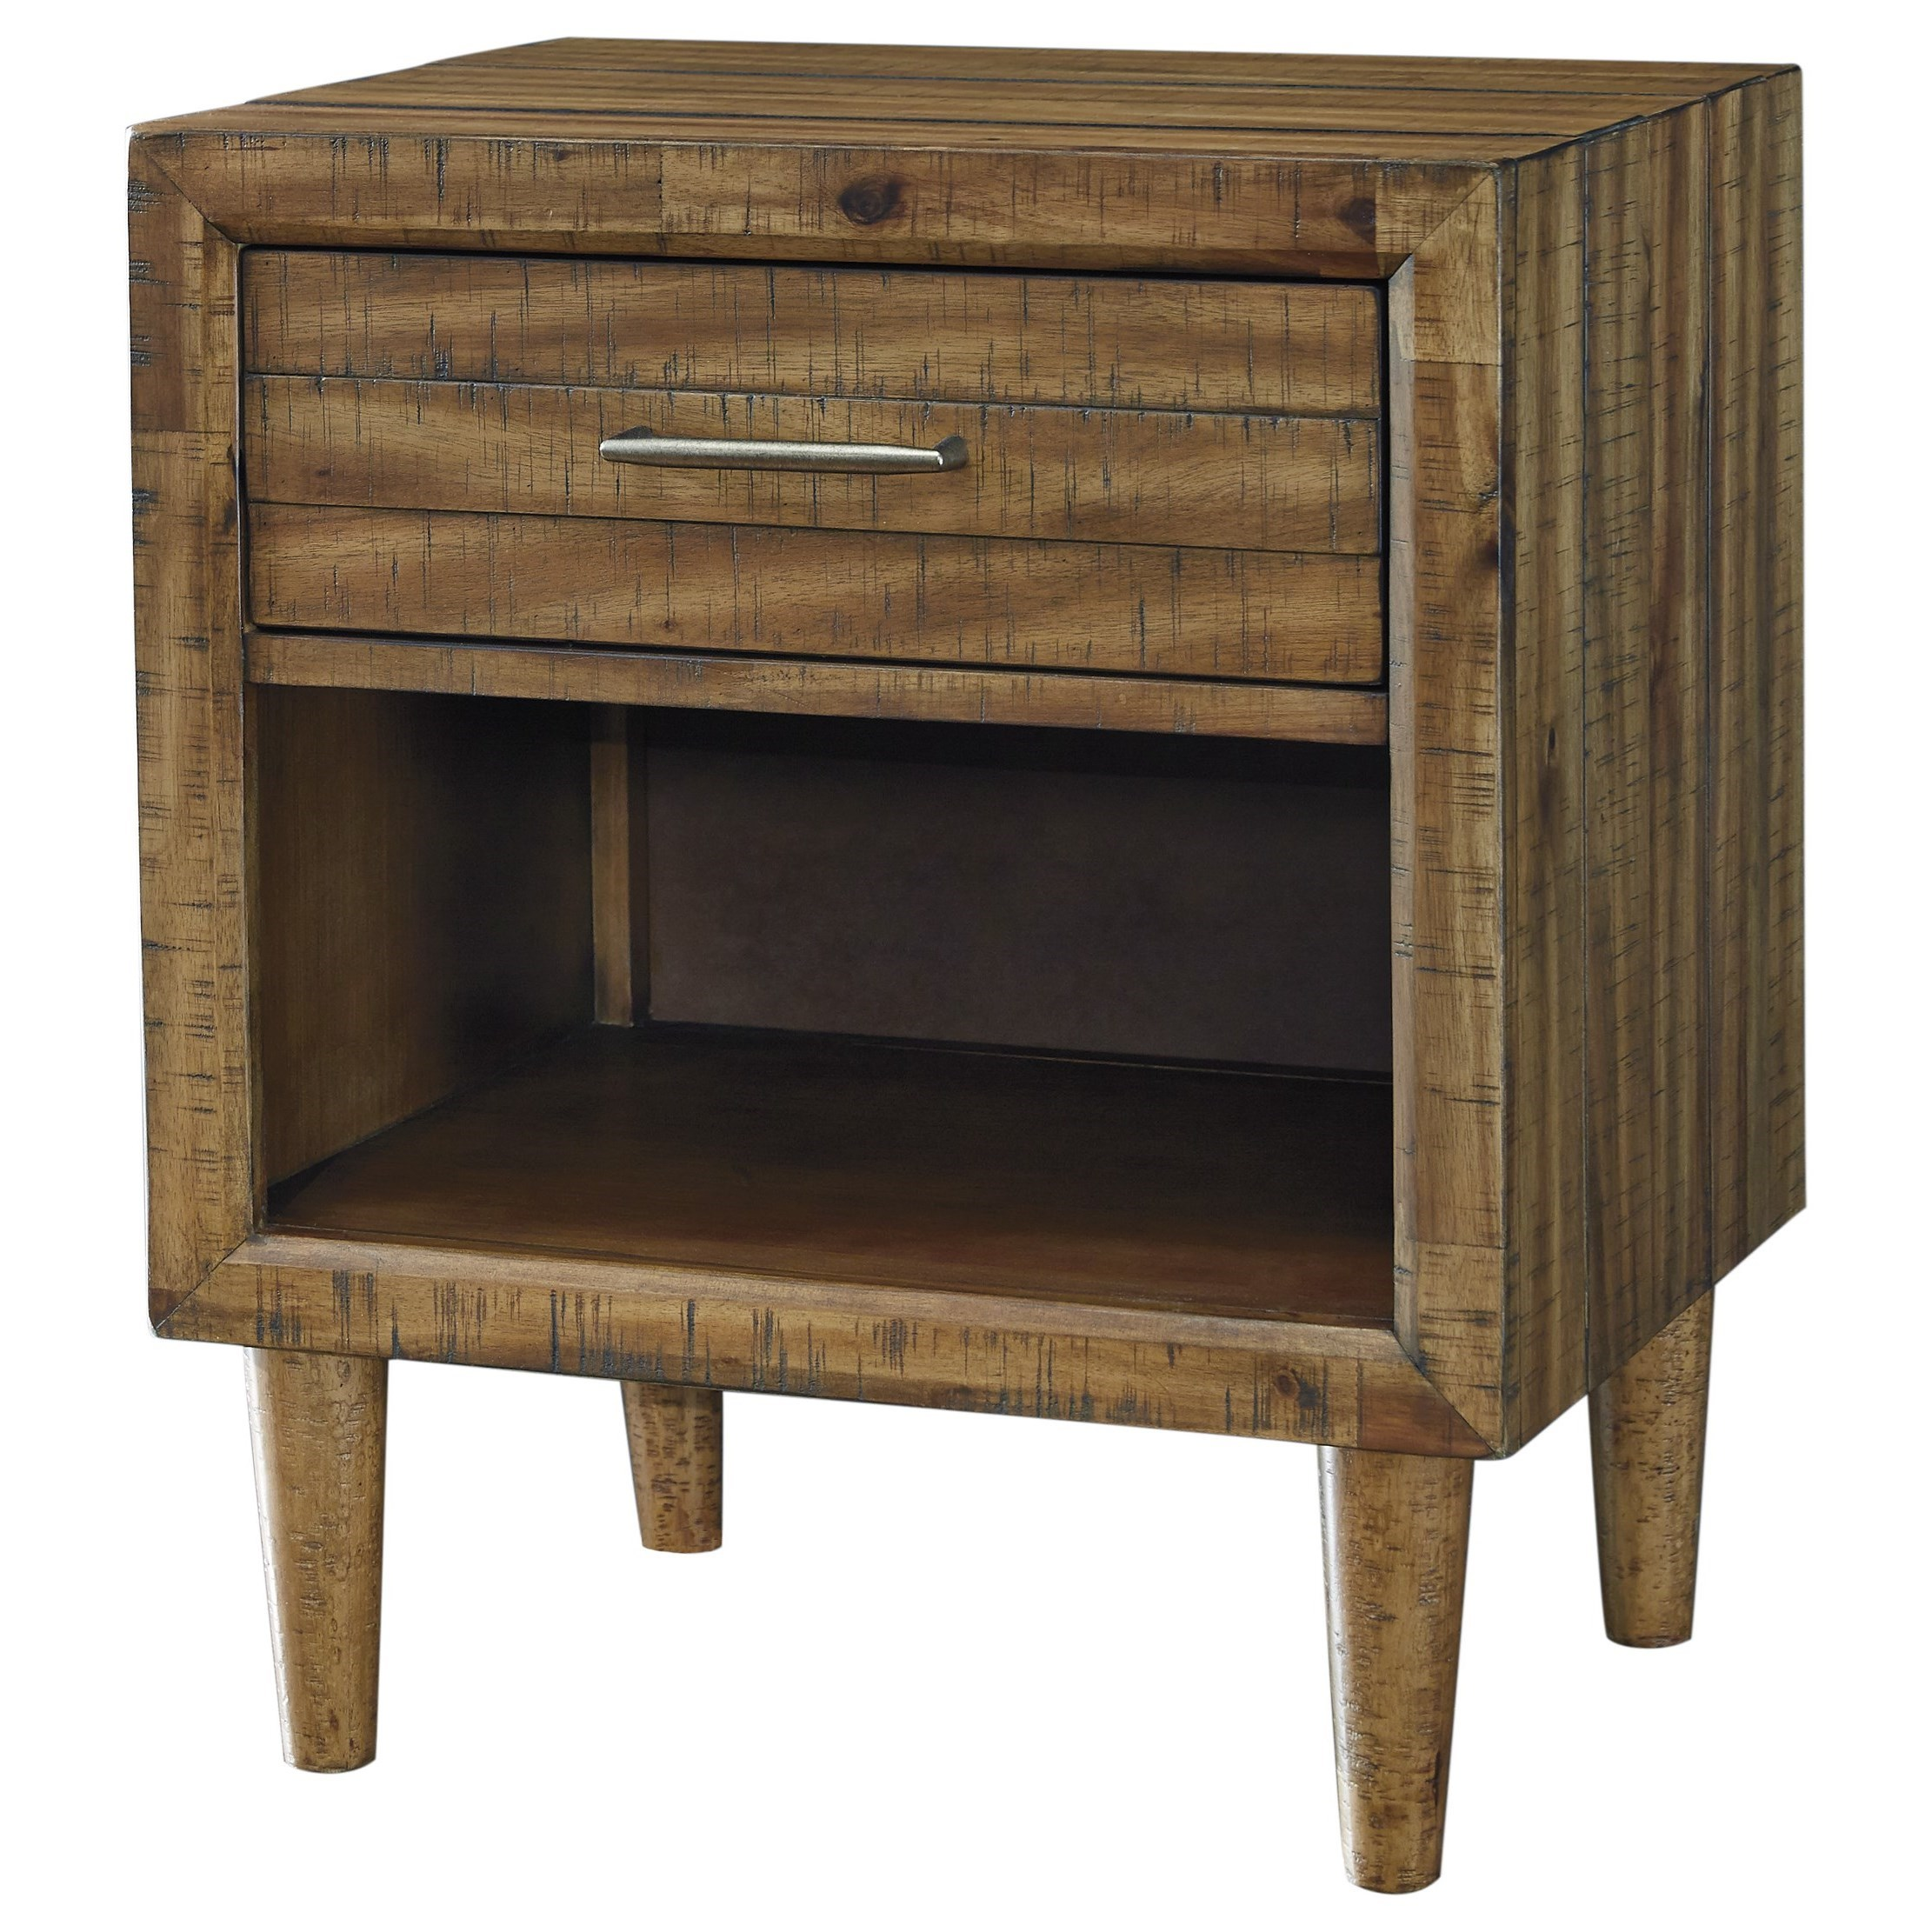 Signature Design by Ashley Broshtan One Drawer Nightstand - Item Number: B518-91